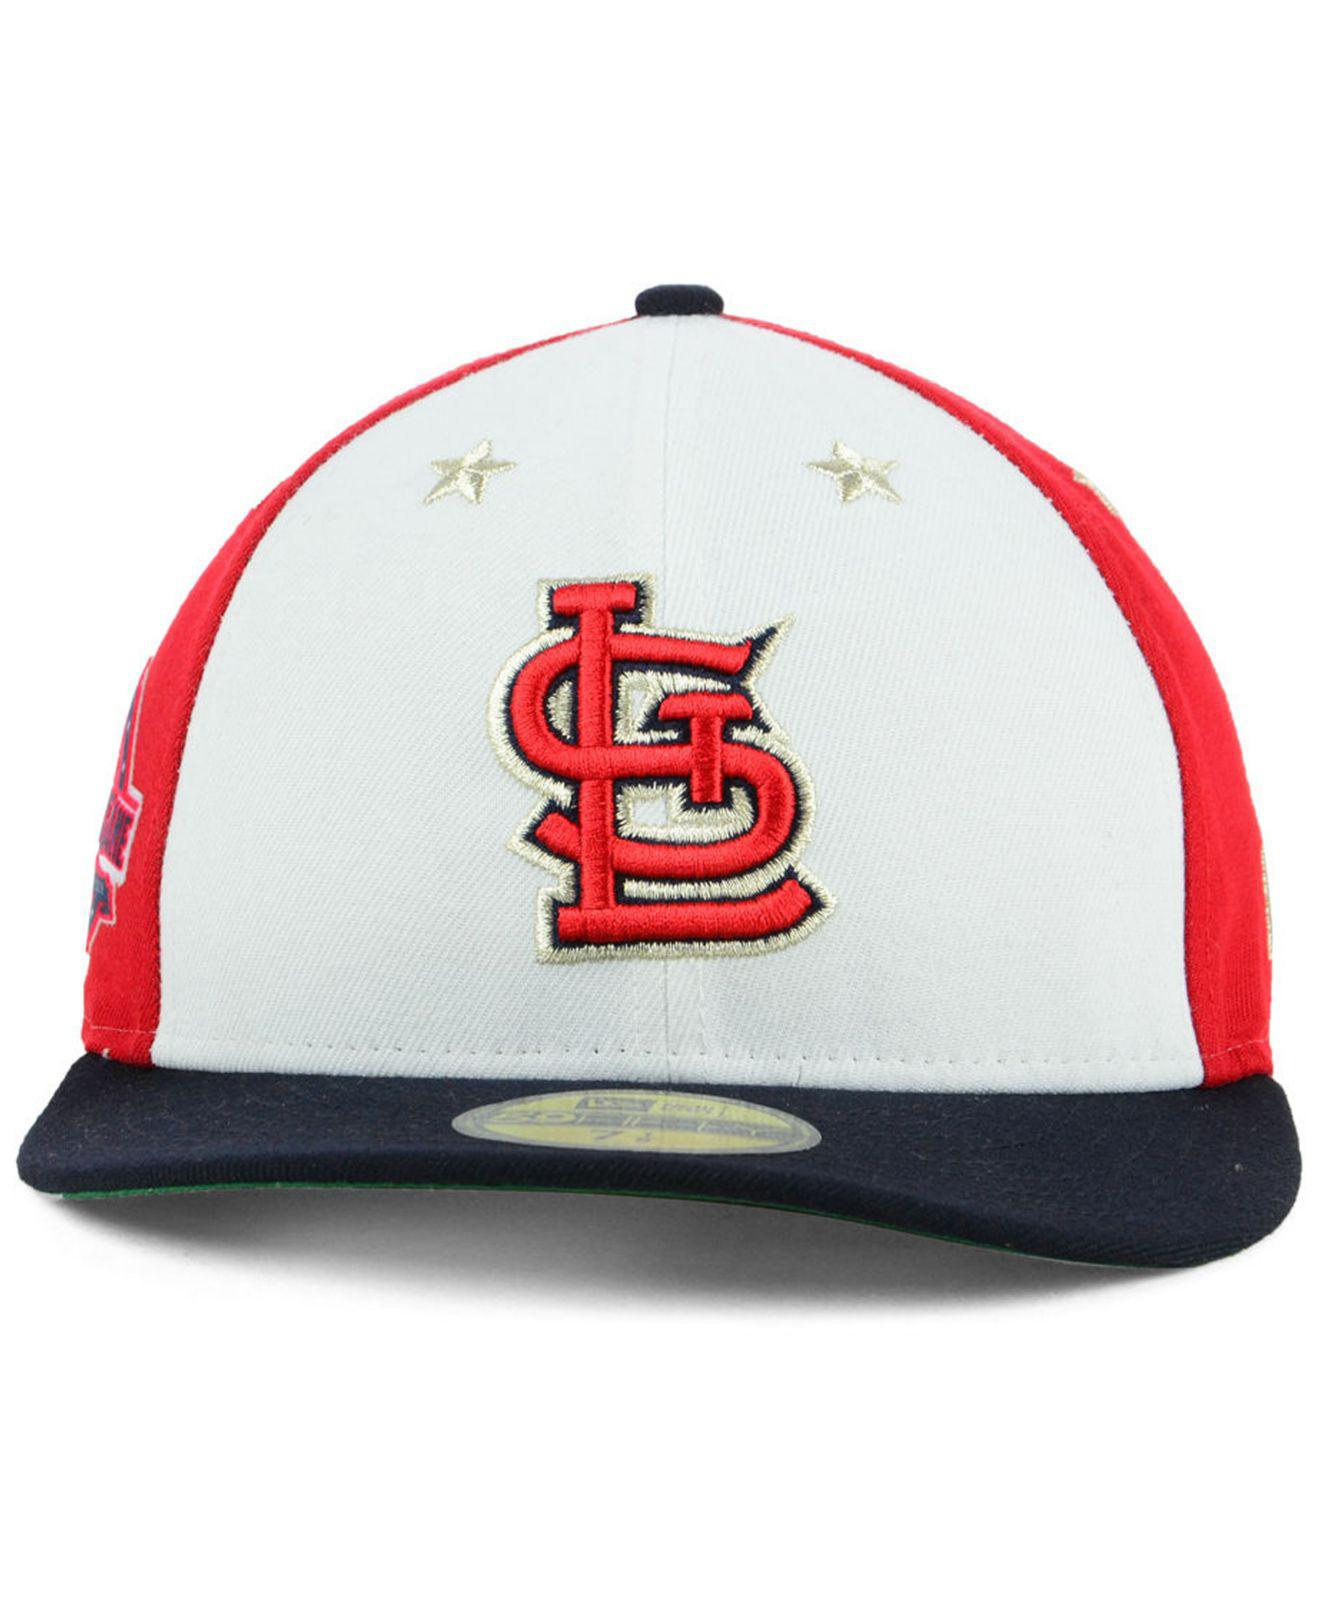 newest c2970 70d22 ... reduced lyst ktz st. louis cardinals all star game patch low profile 59fifty  fitted cap